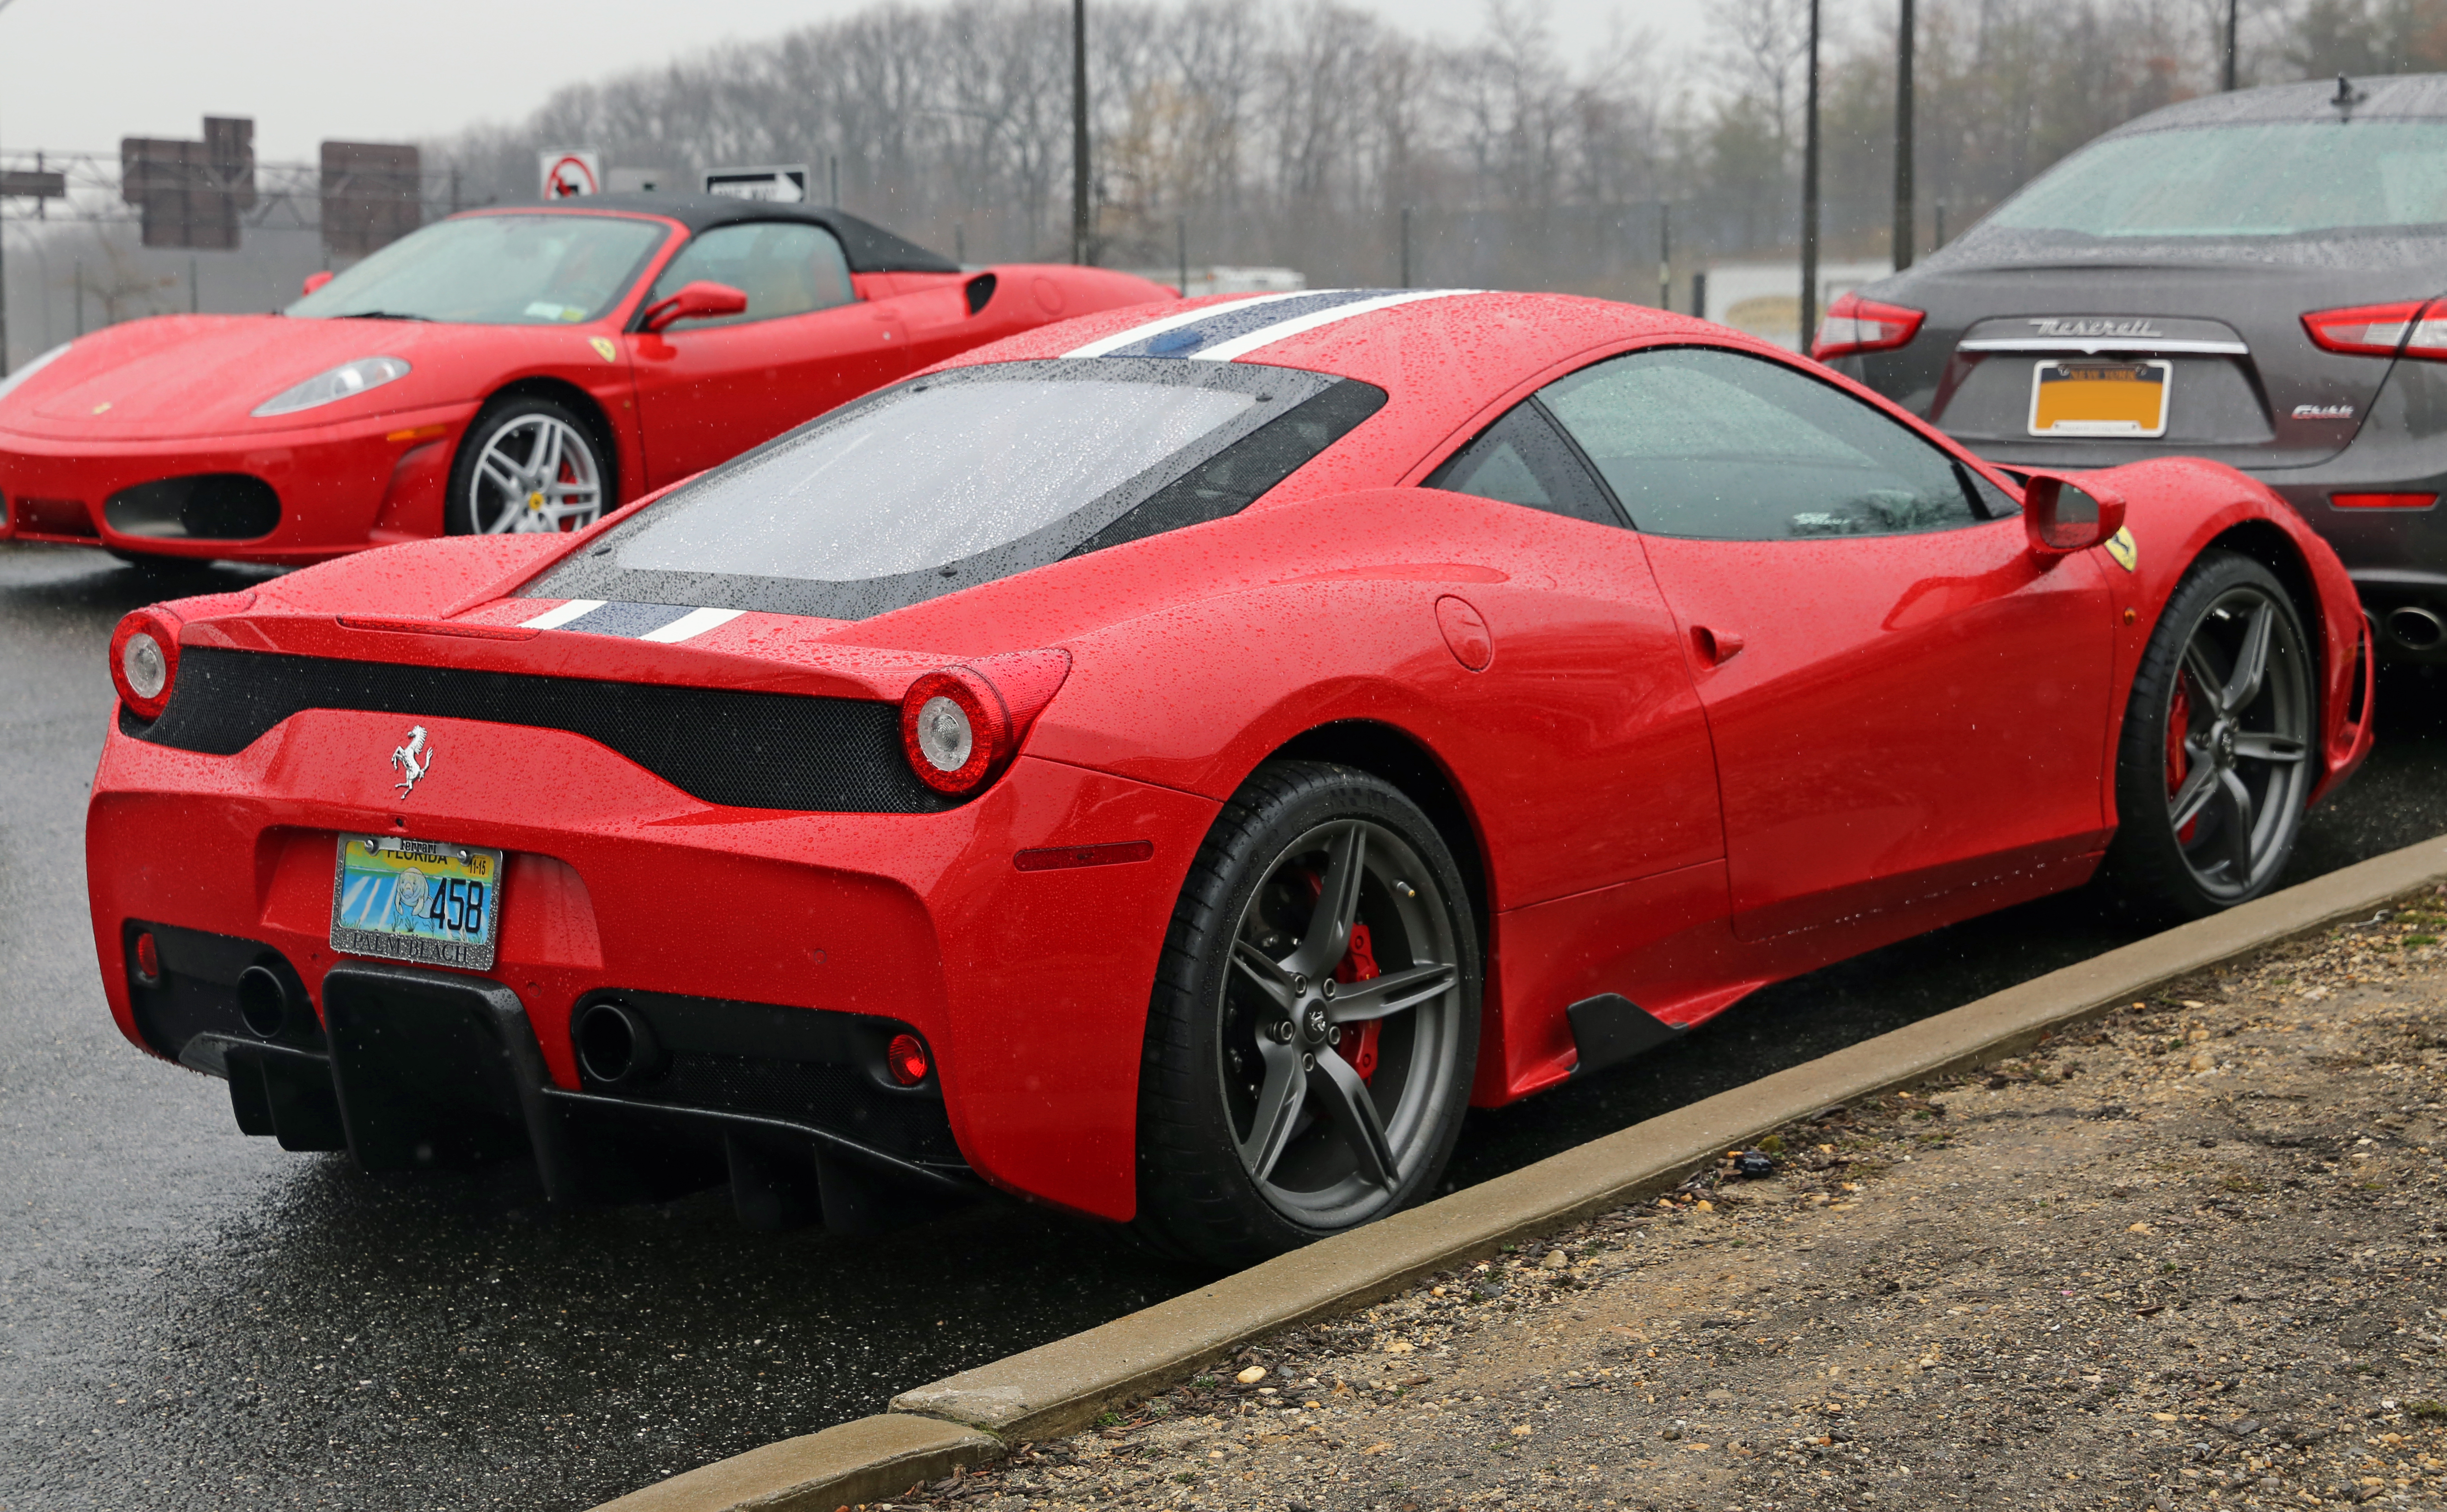 file:2015 ferrari 458 speciale, rear right - wikimedia commons